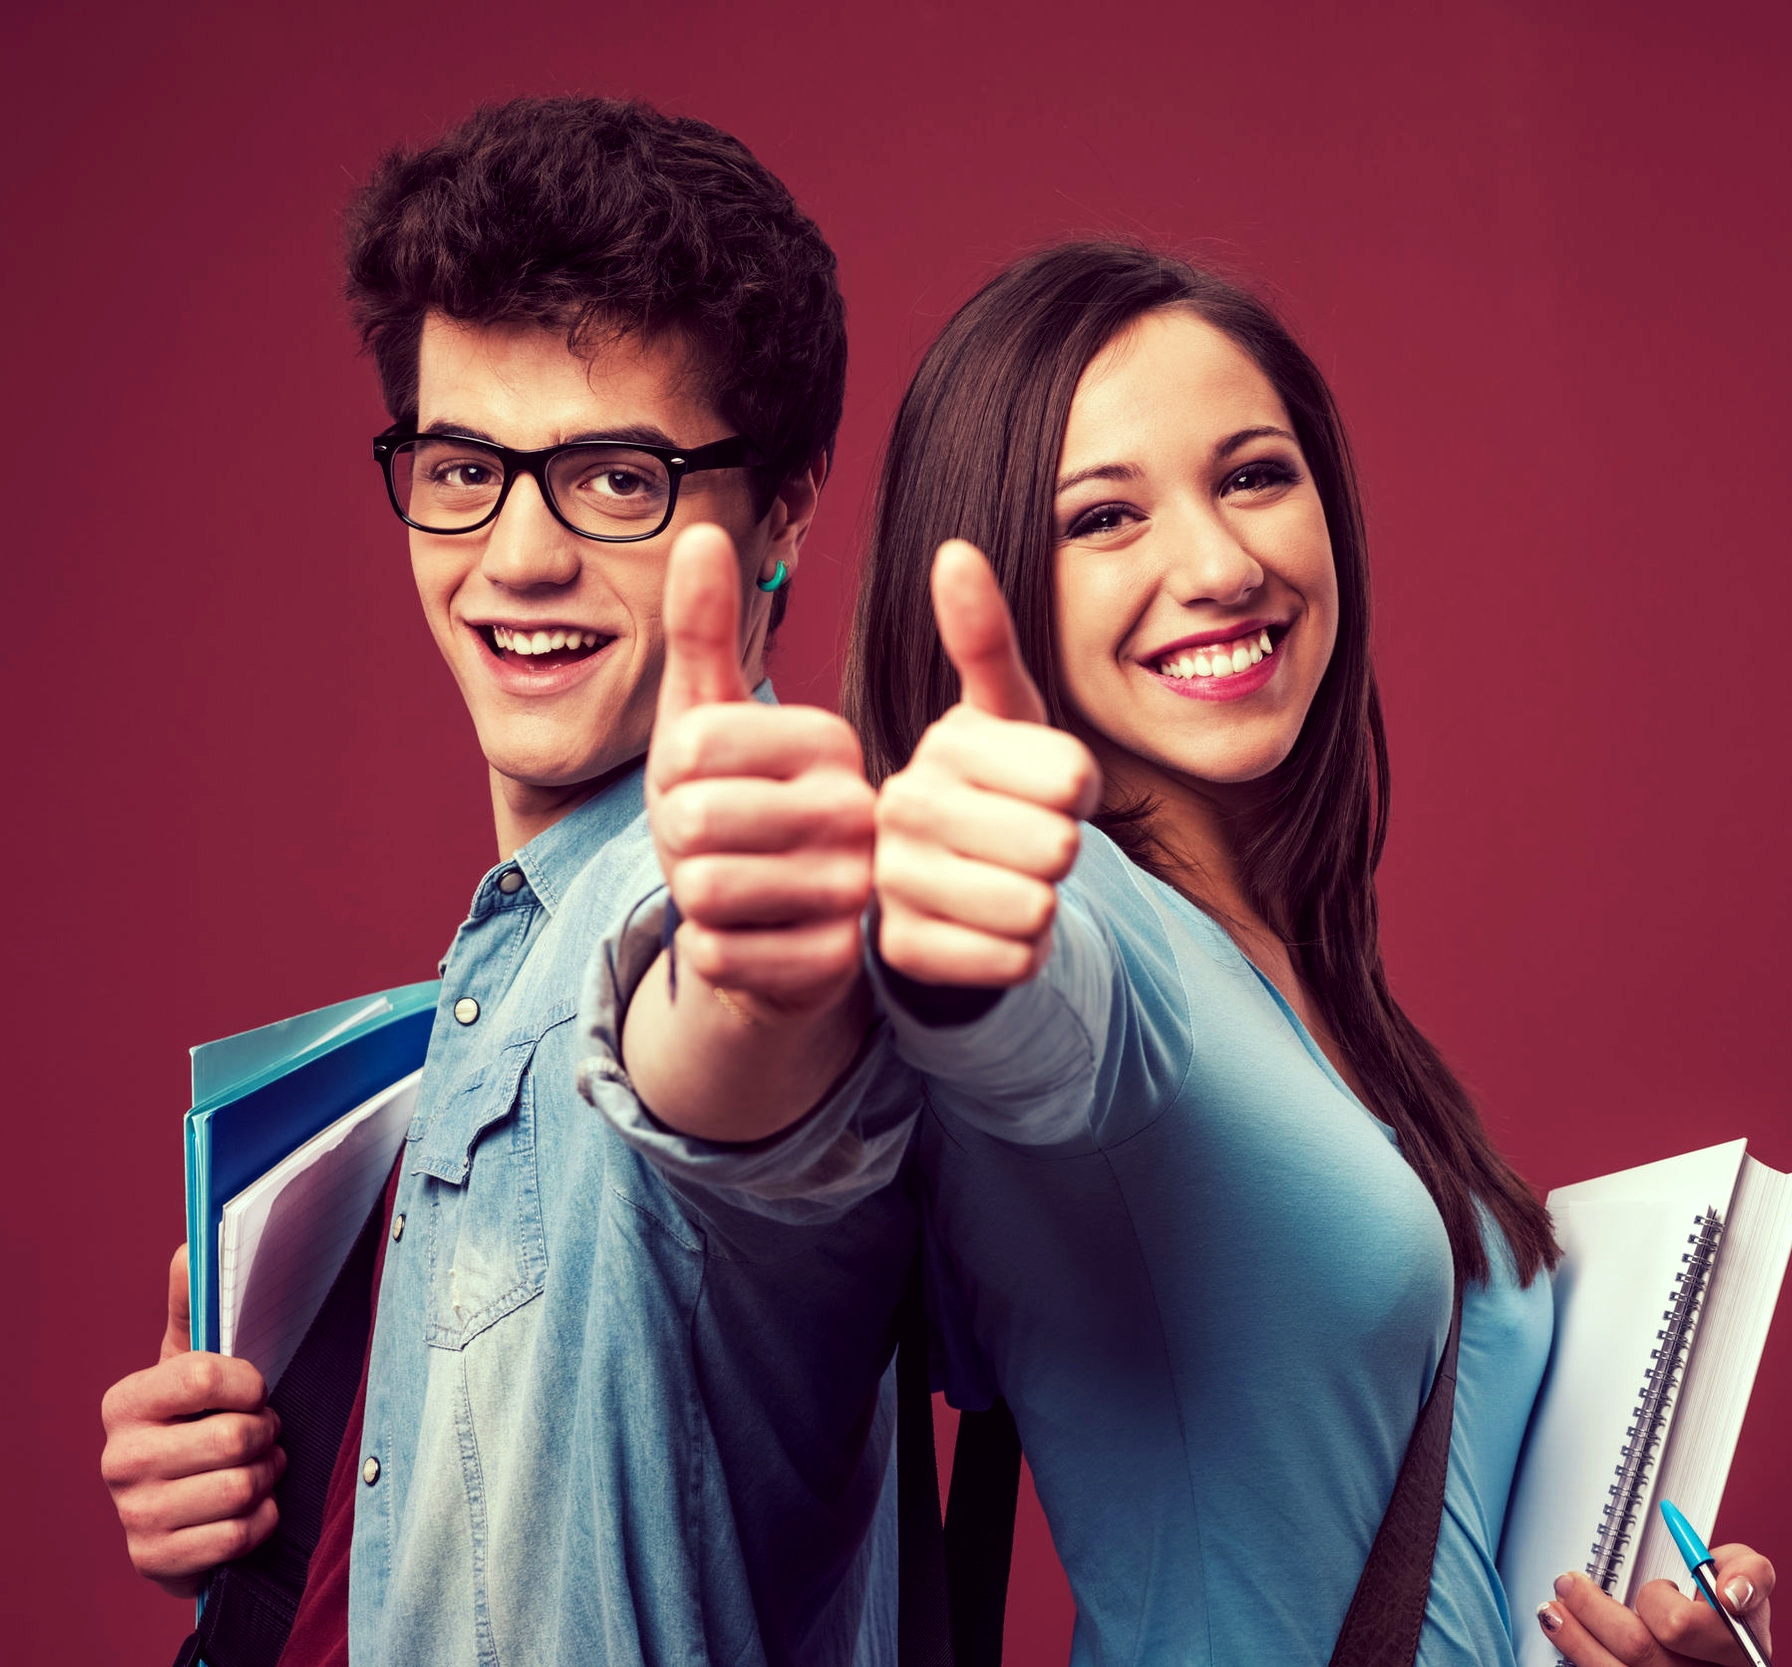 Happy Students with Books.jpg